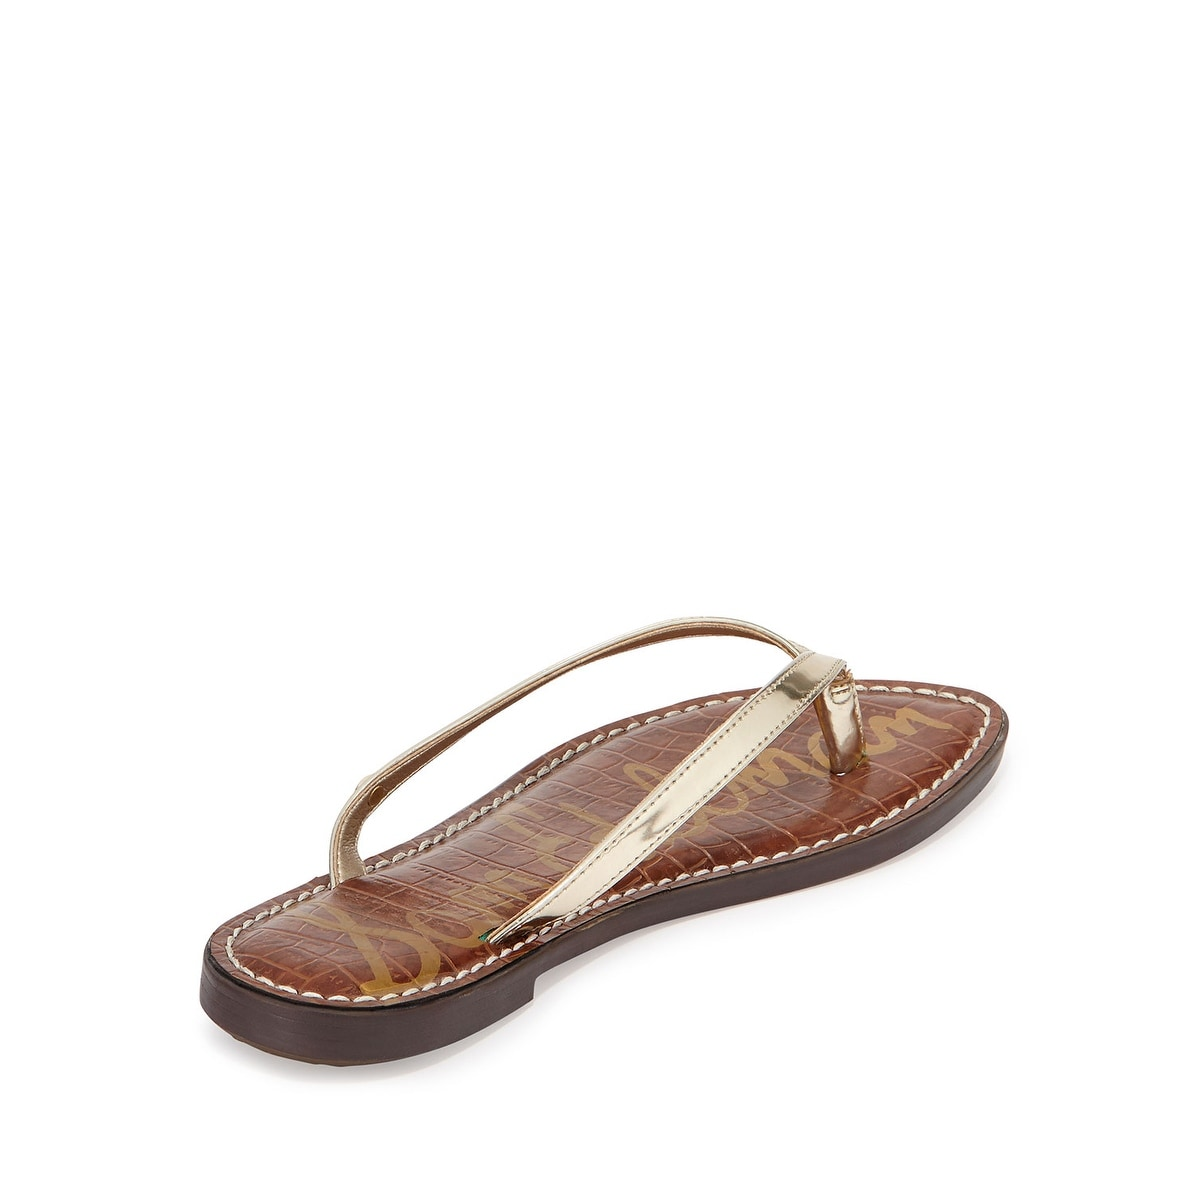 7e6d3fc5b Shop Sam Edelman Women's Gracie Thong Sandal - Free Shipping On Orders Over  $45 - Overstock - 14793503